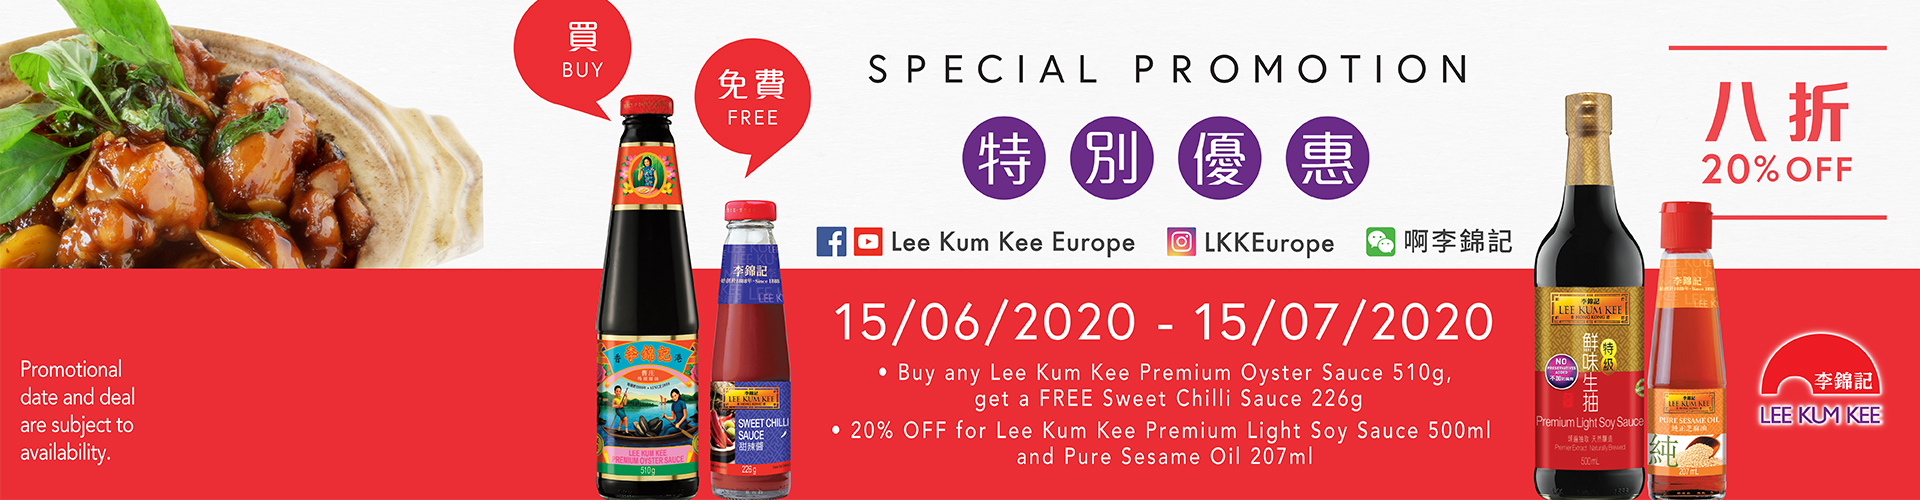 Lee Kum Kee Special Promotion